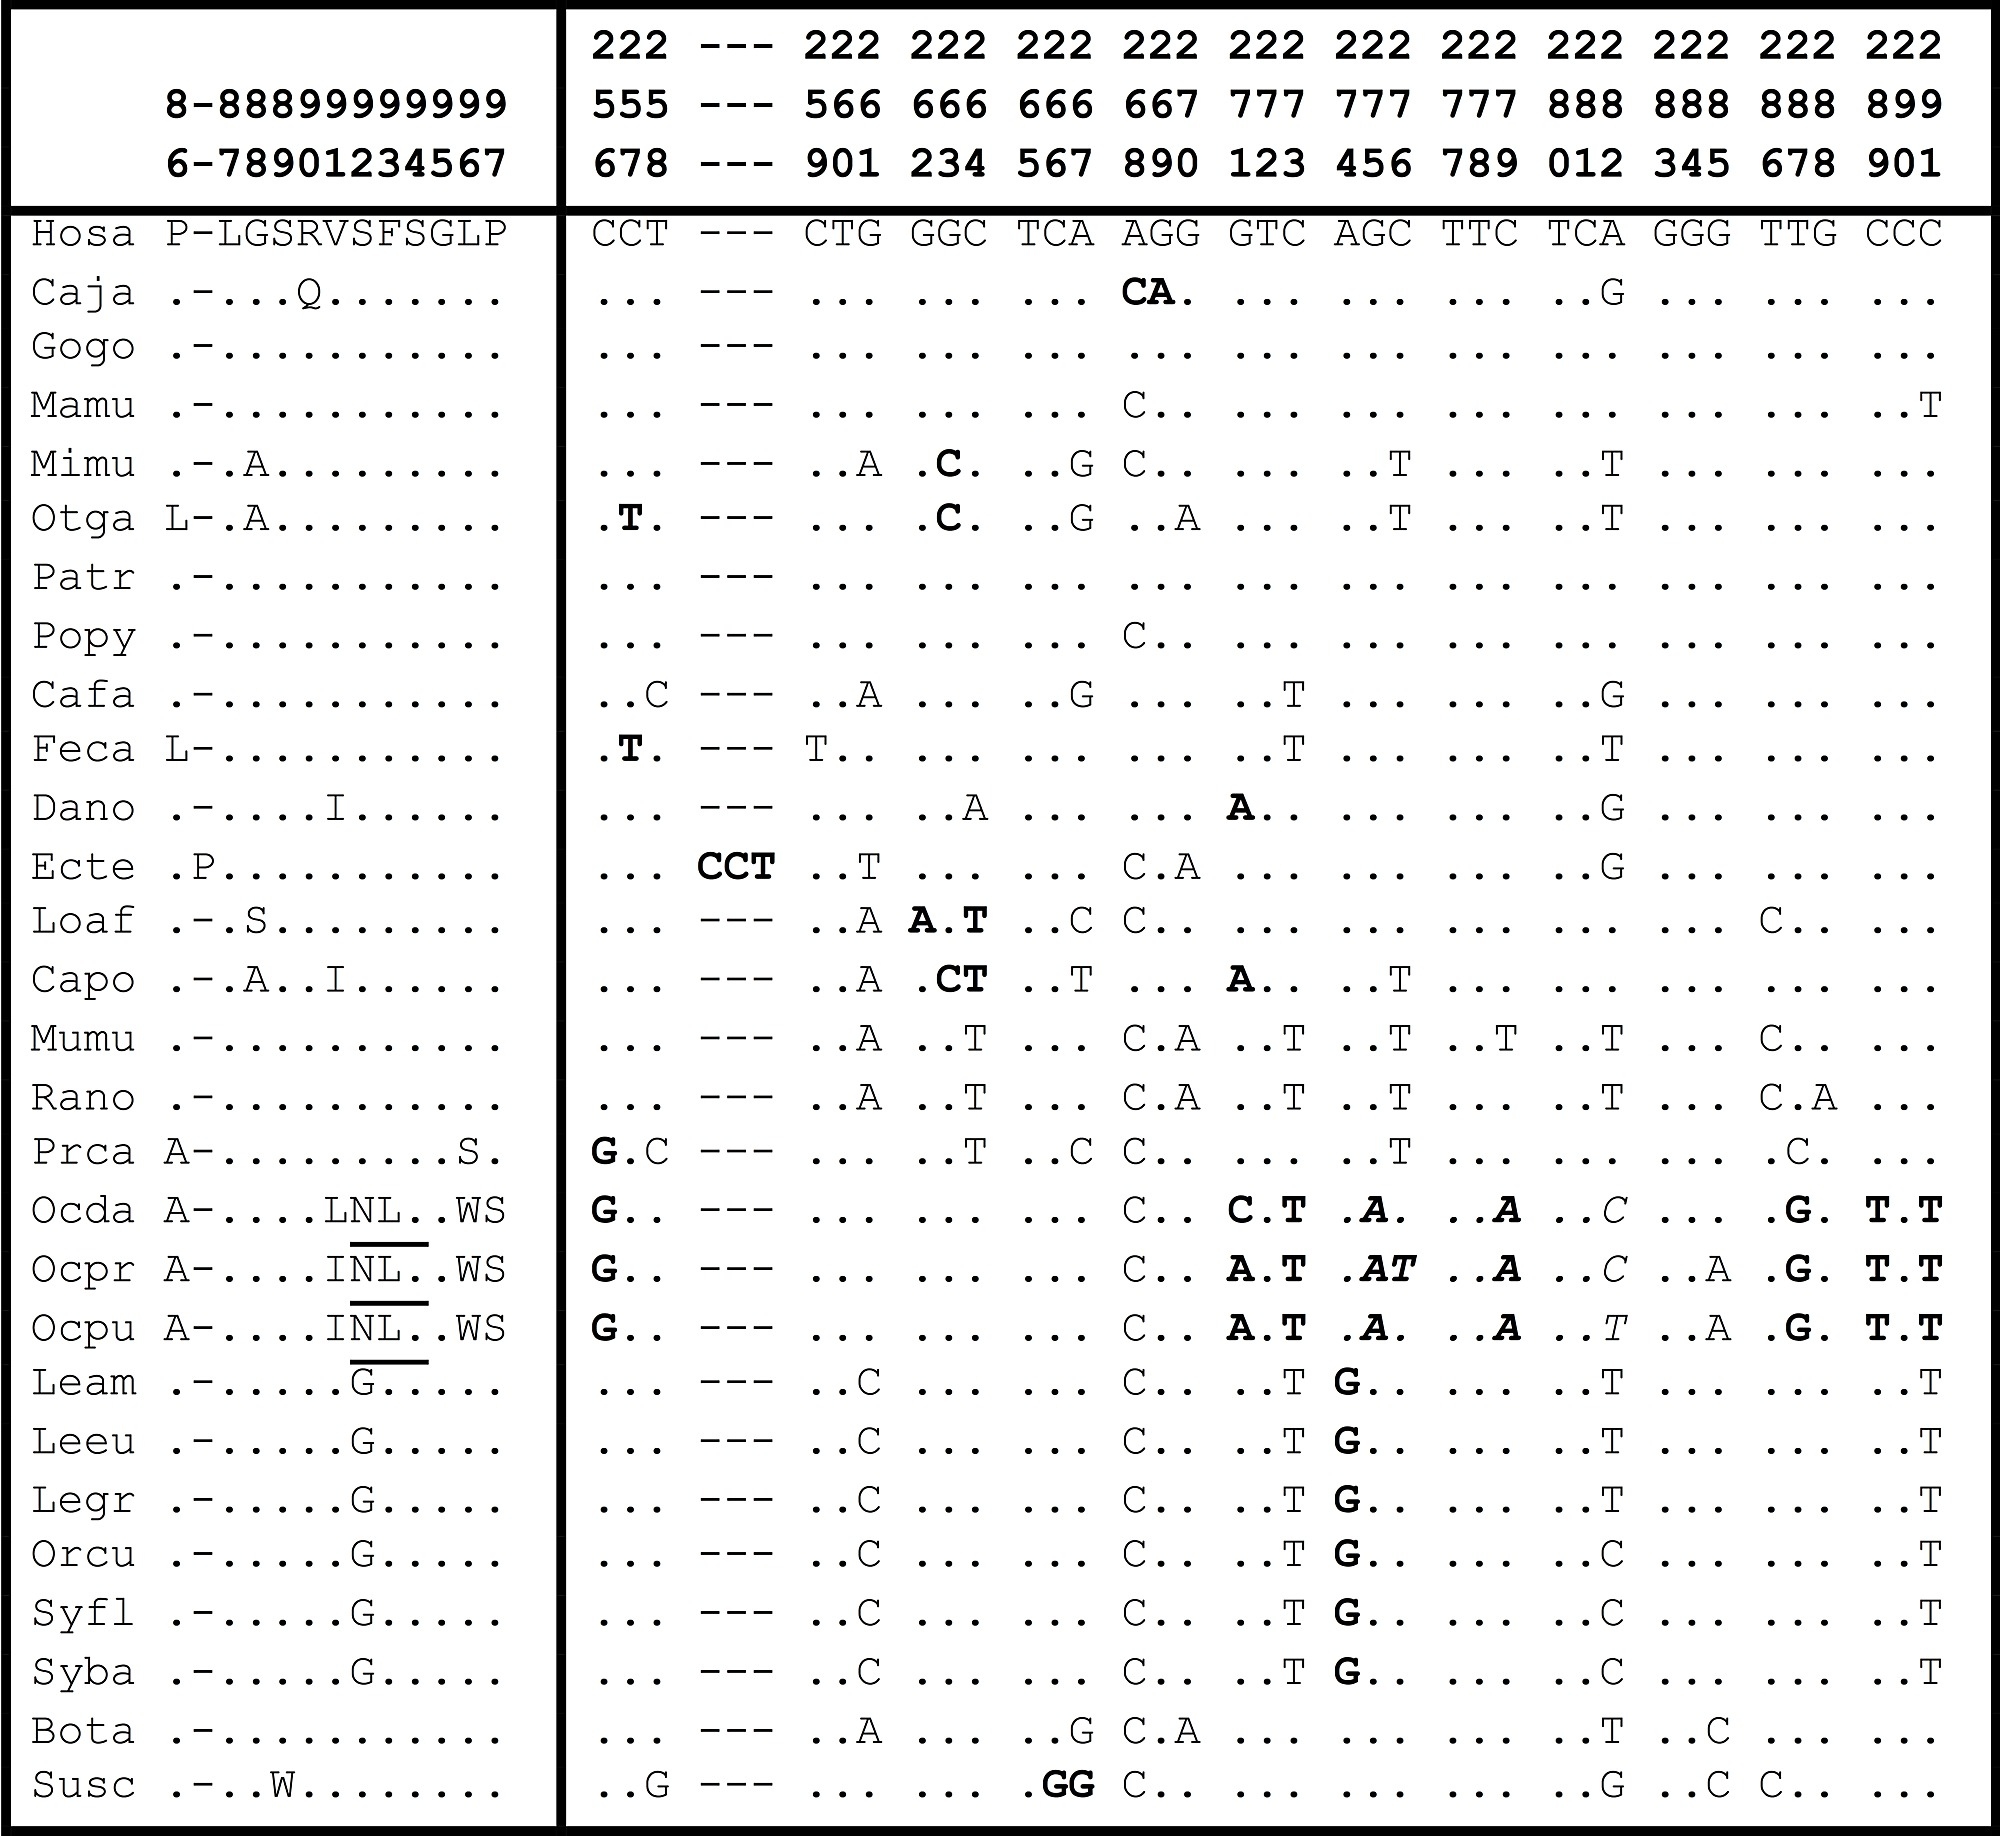 Amino acid and nucleotide sequences, corresponding to the 12